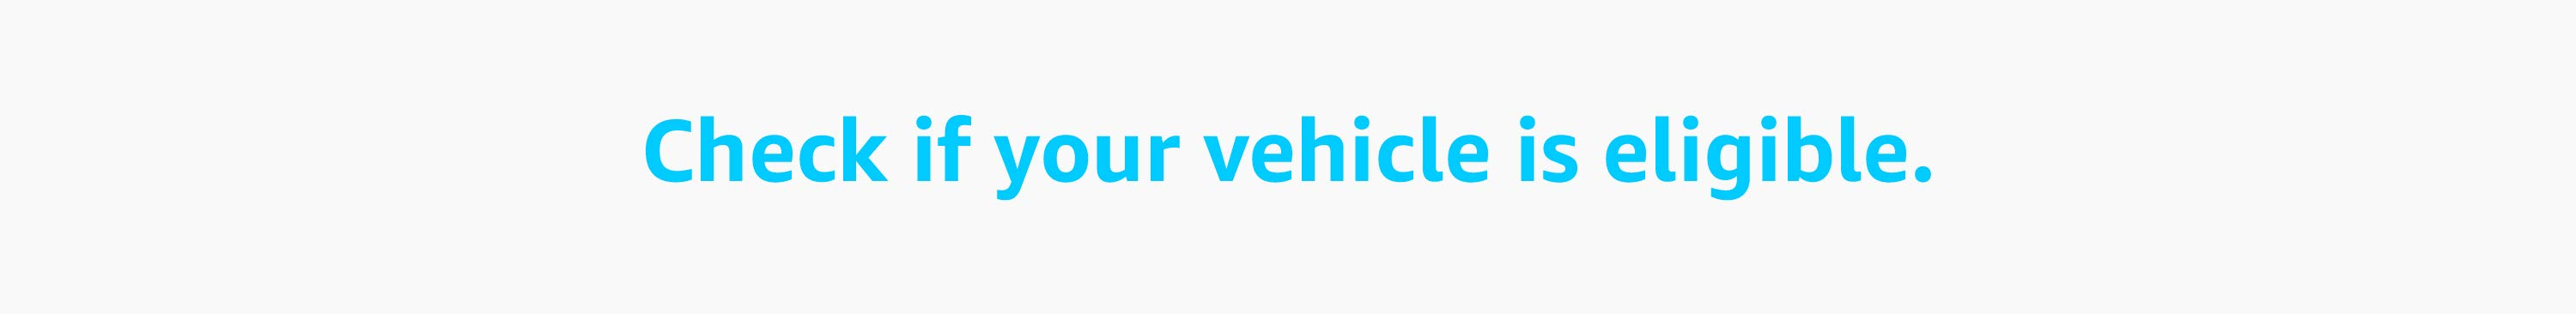 Check if your vehicle is eligible